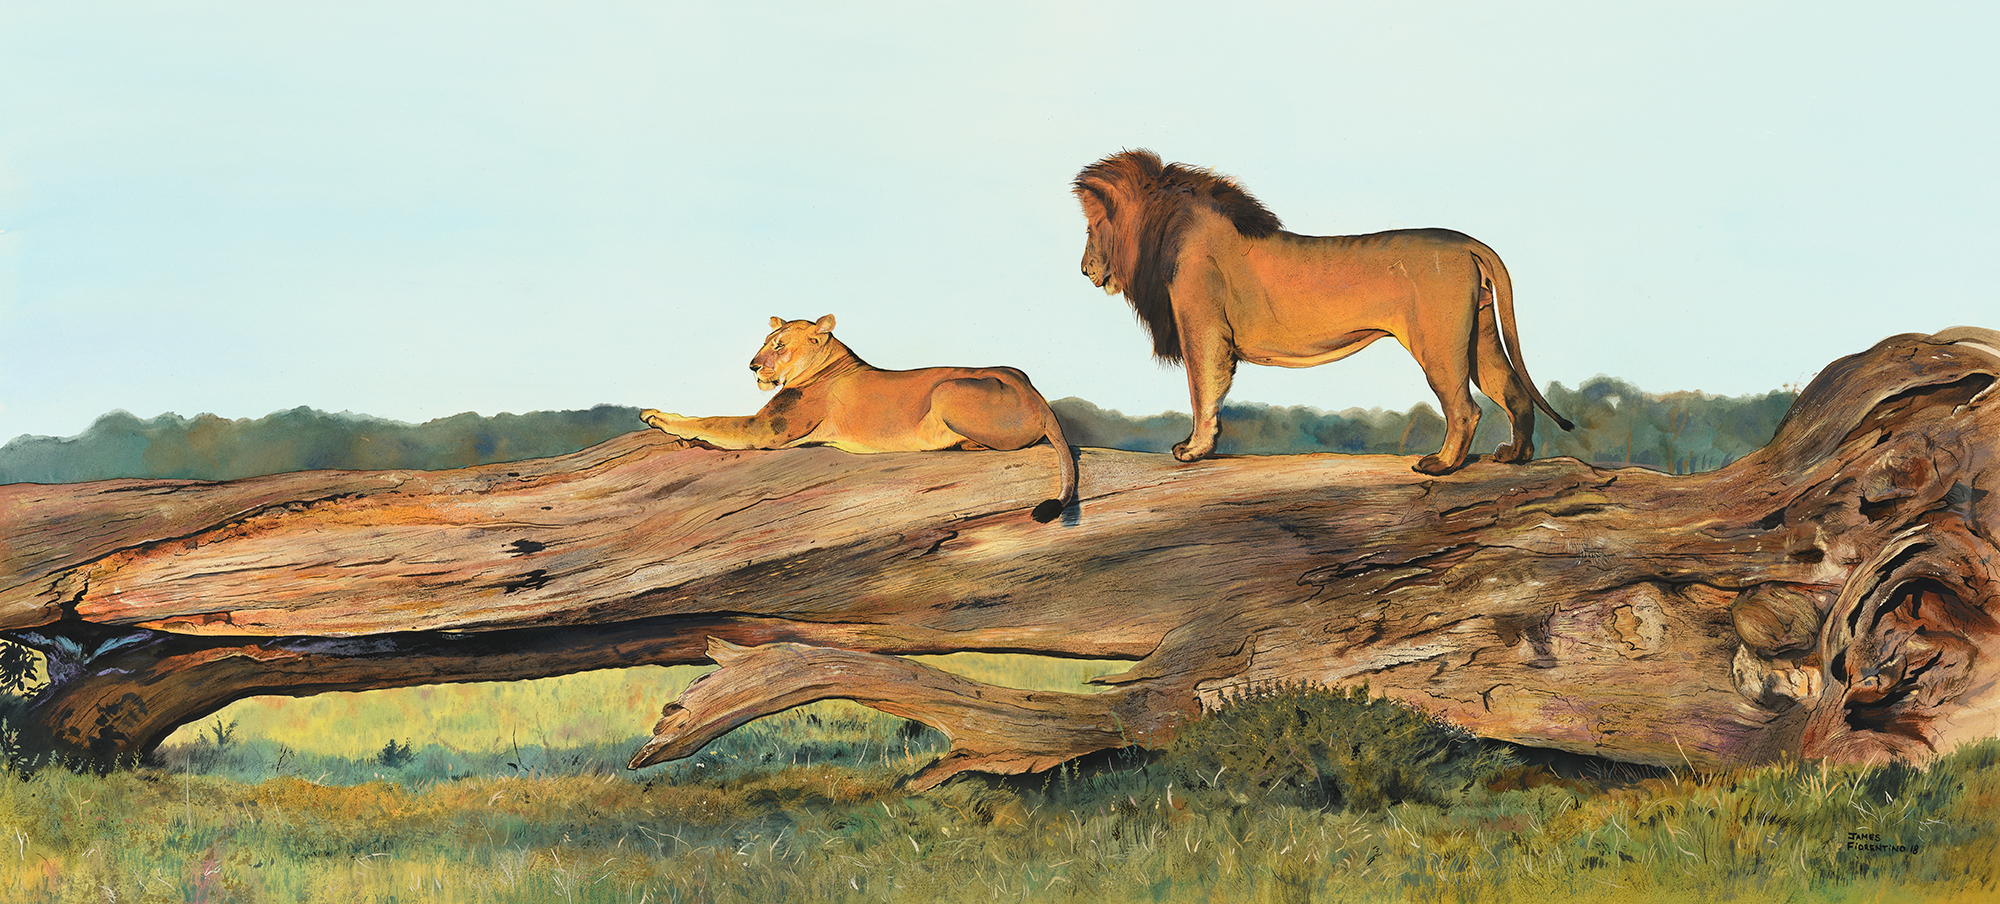 Lions-Art To Dream For.jpg